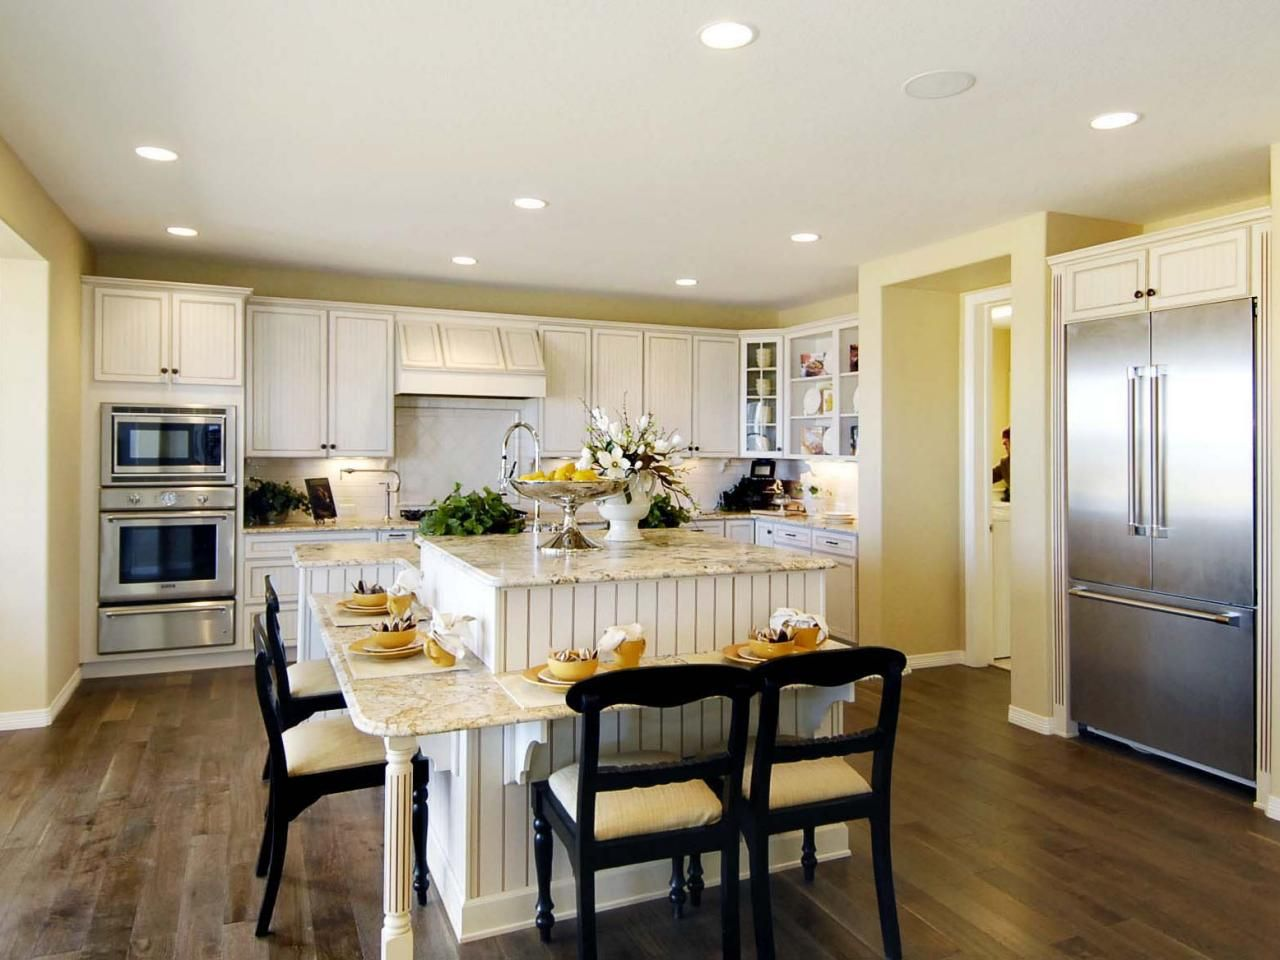 Eat In Kitchen Design Ideas Part - 32: Kitchen Island Design Ideas: Pictures, Options U0026 Tips